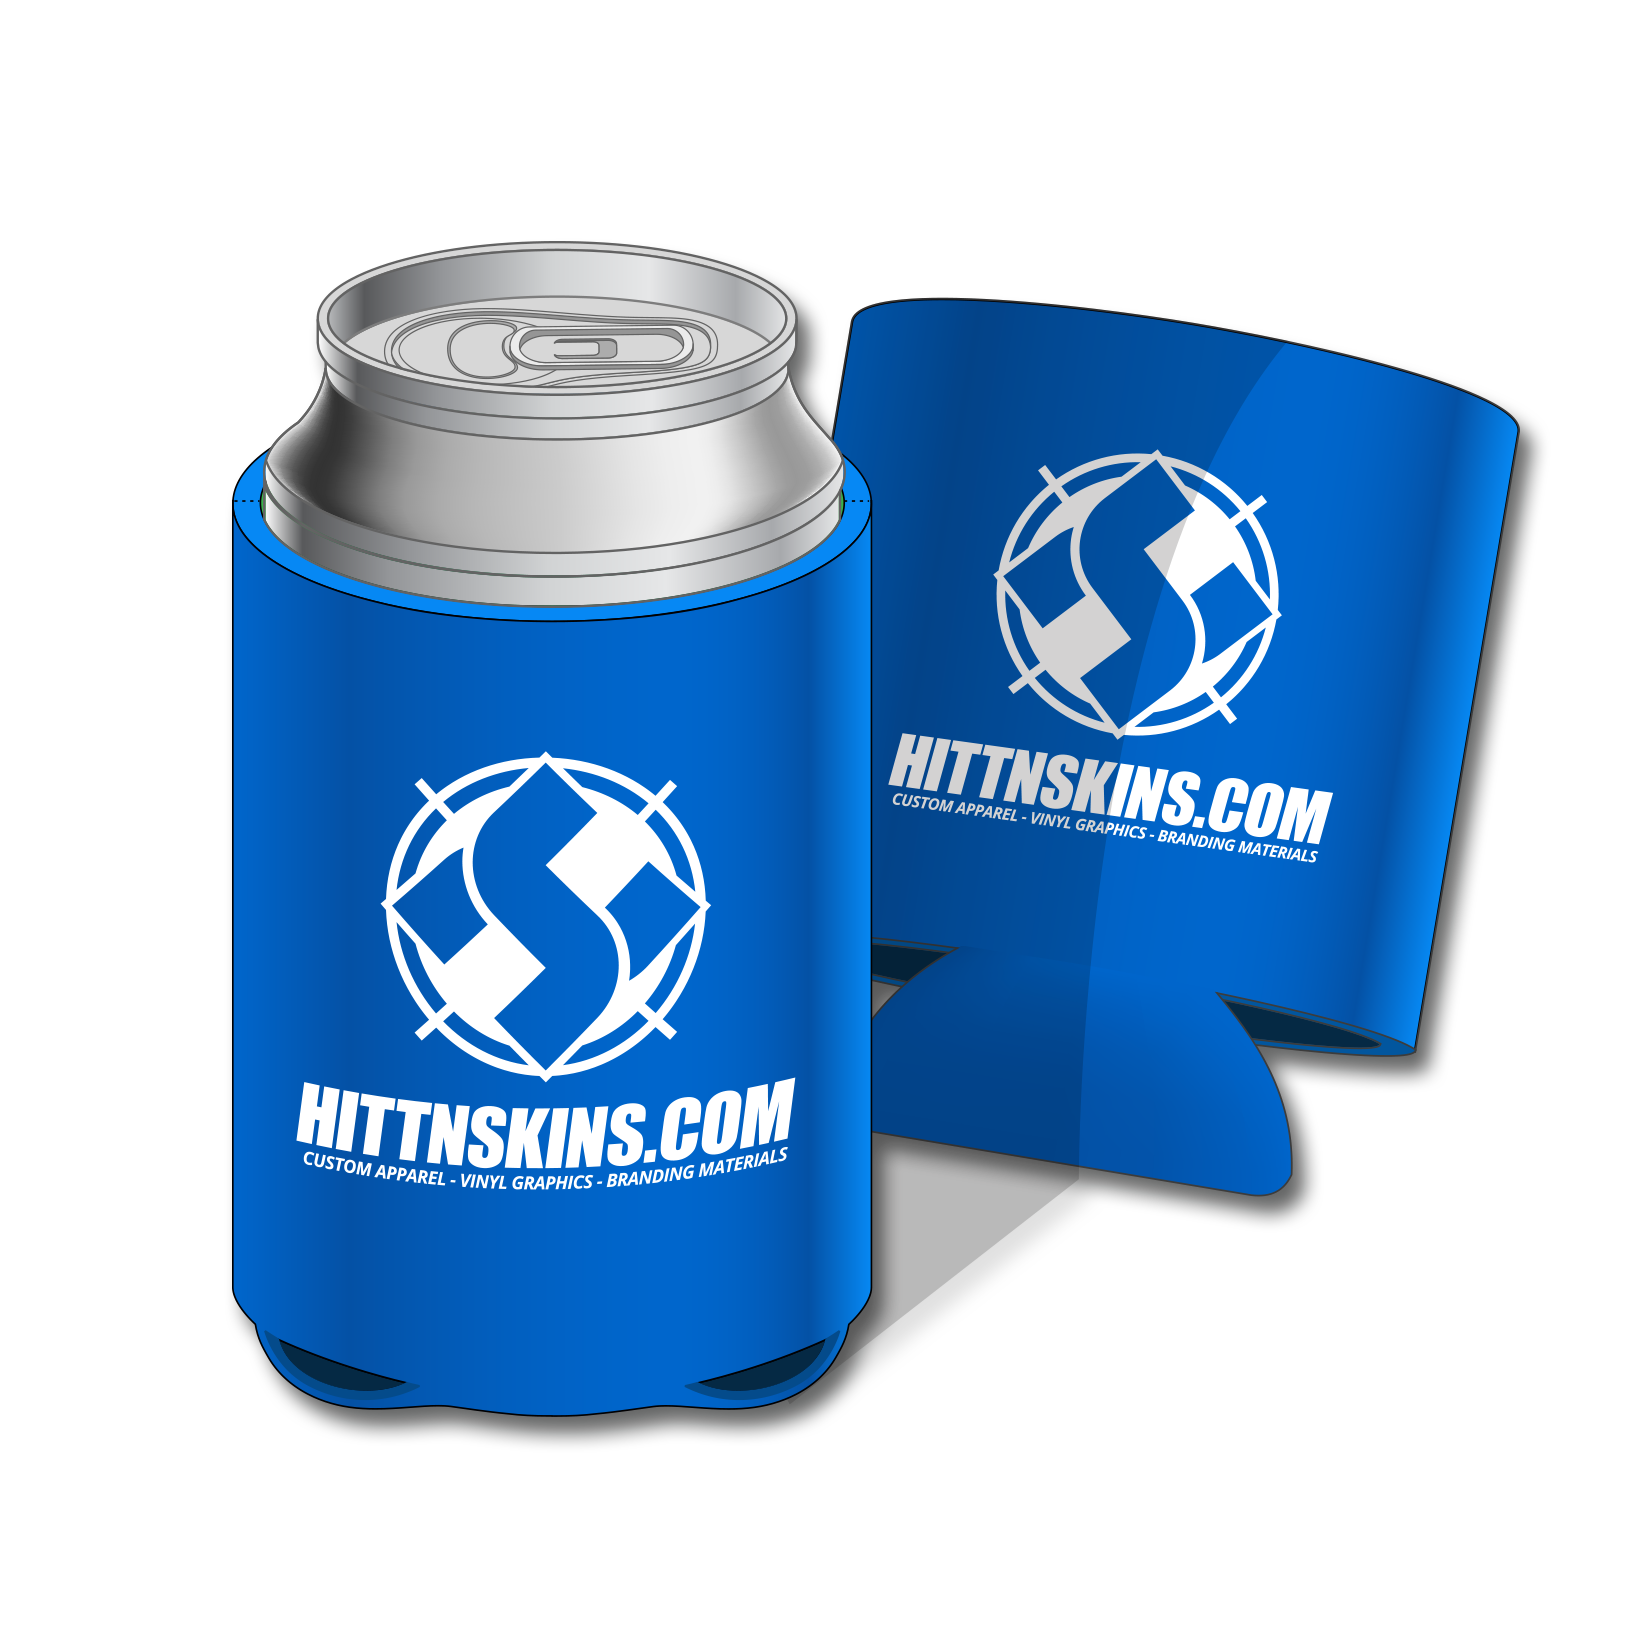 Hittn' Skins - A Custom Promotional Items Printer Located